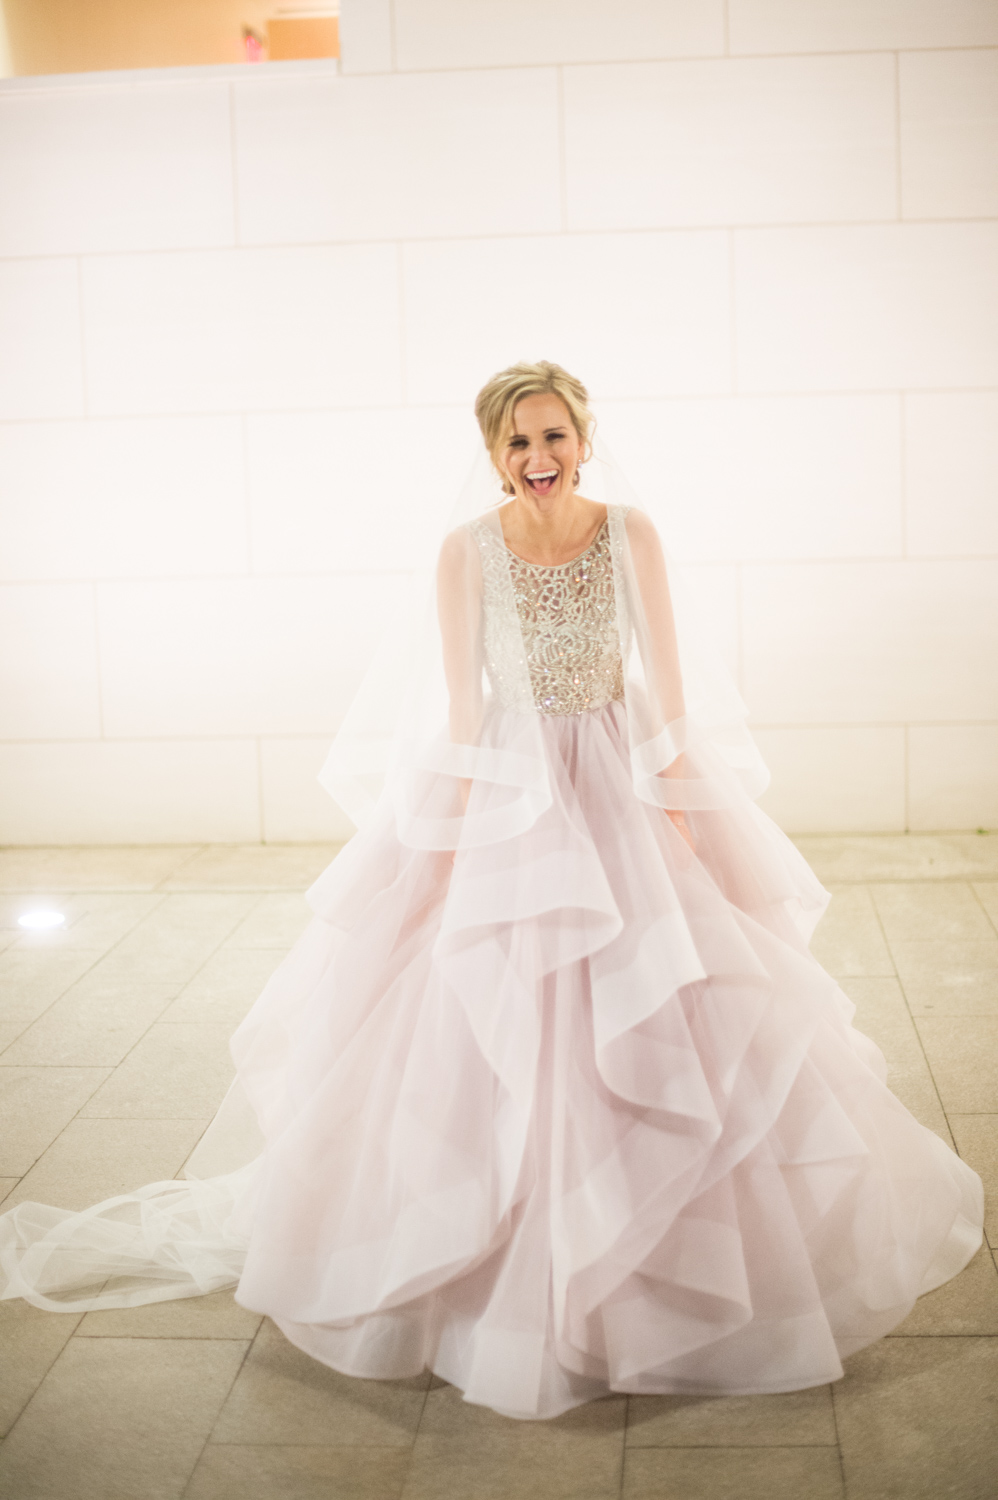 Bridal Gowns with Bling Beading and Embellishments - Inside Weddings